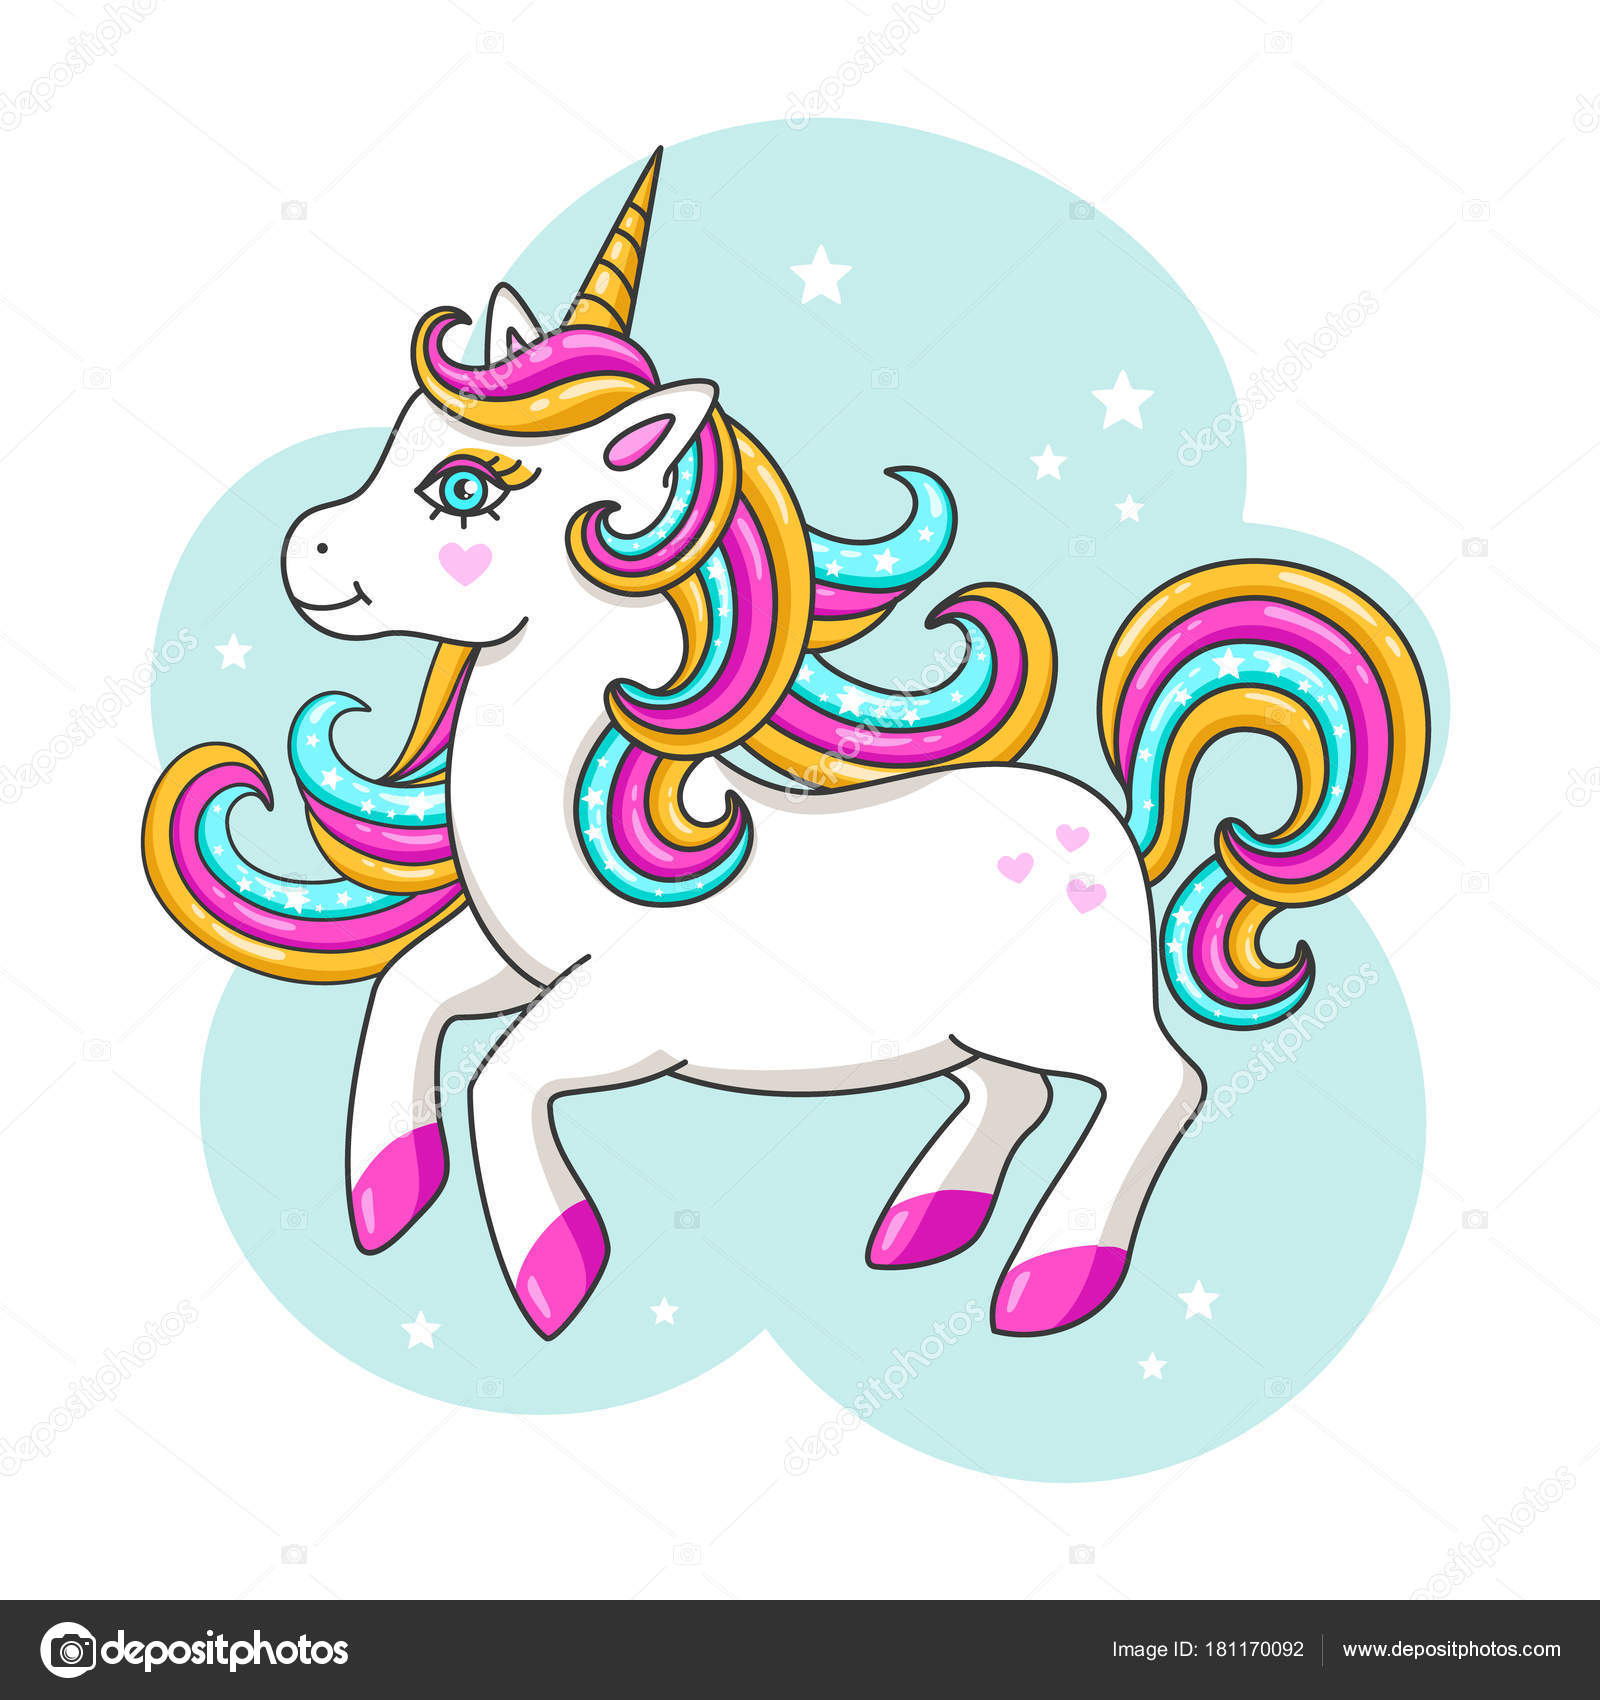 Weisse Susse Einhorn Vektor Illustration Stockvektor C Kate She